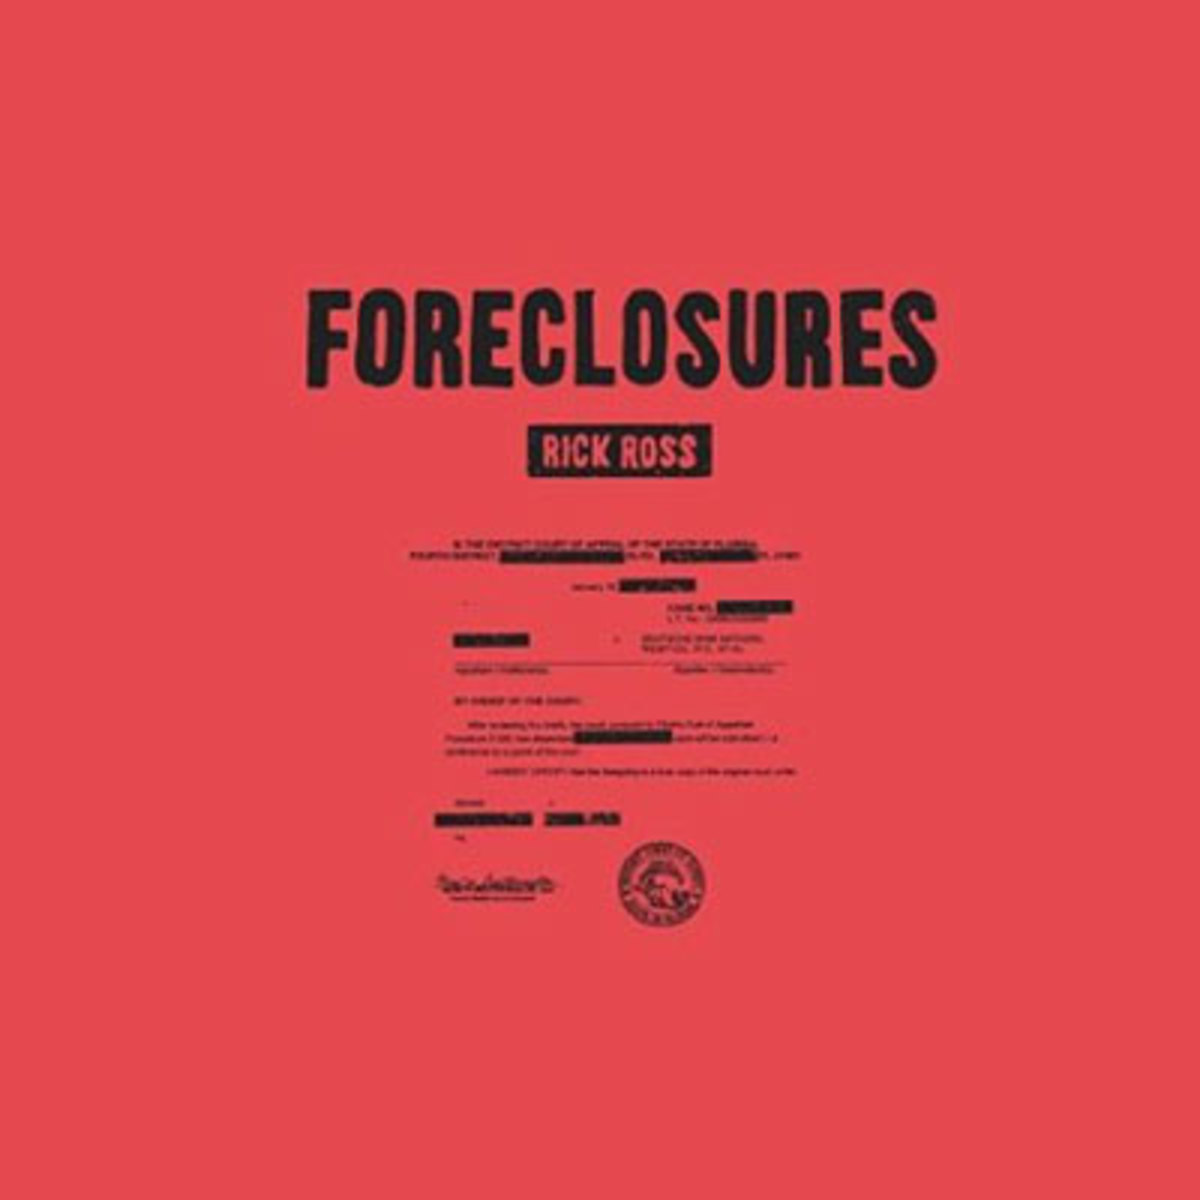 rick-ross-foreclosures.jpg